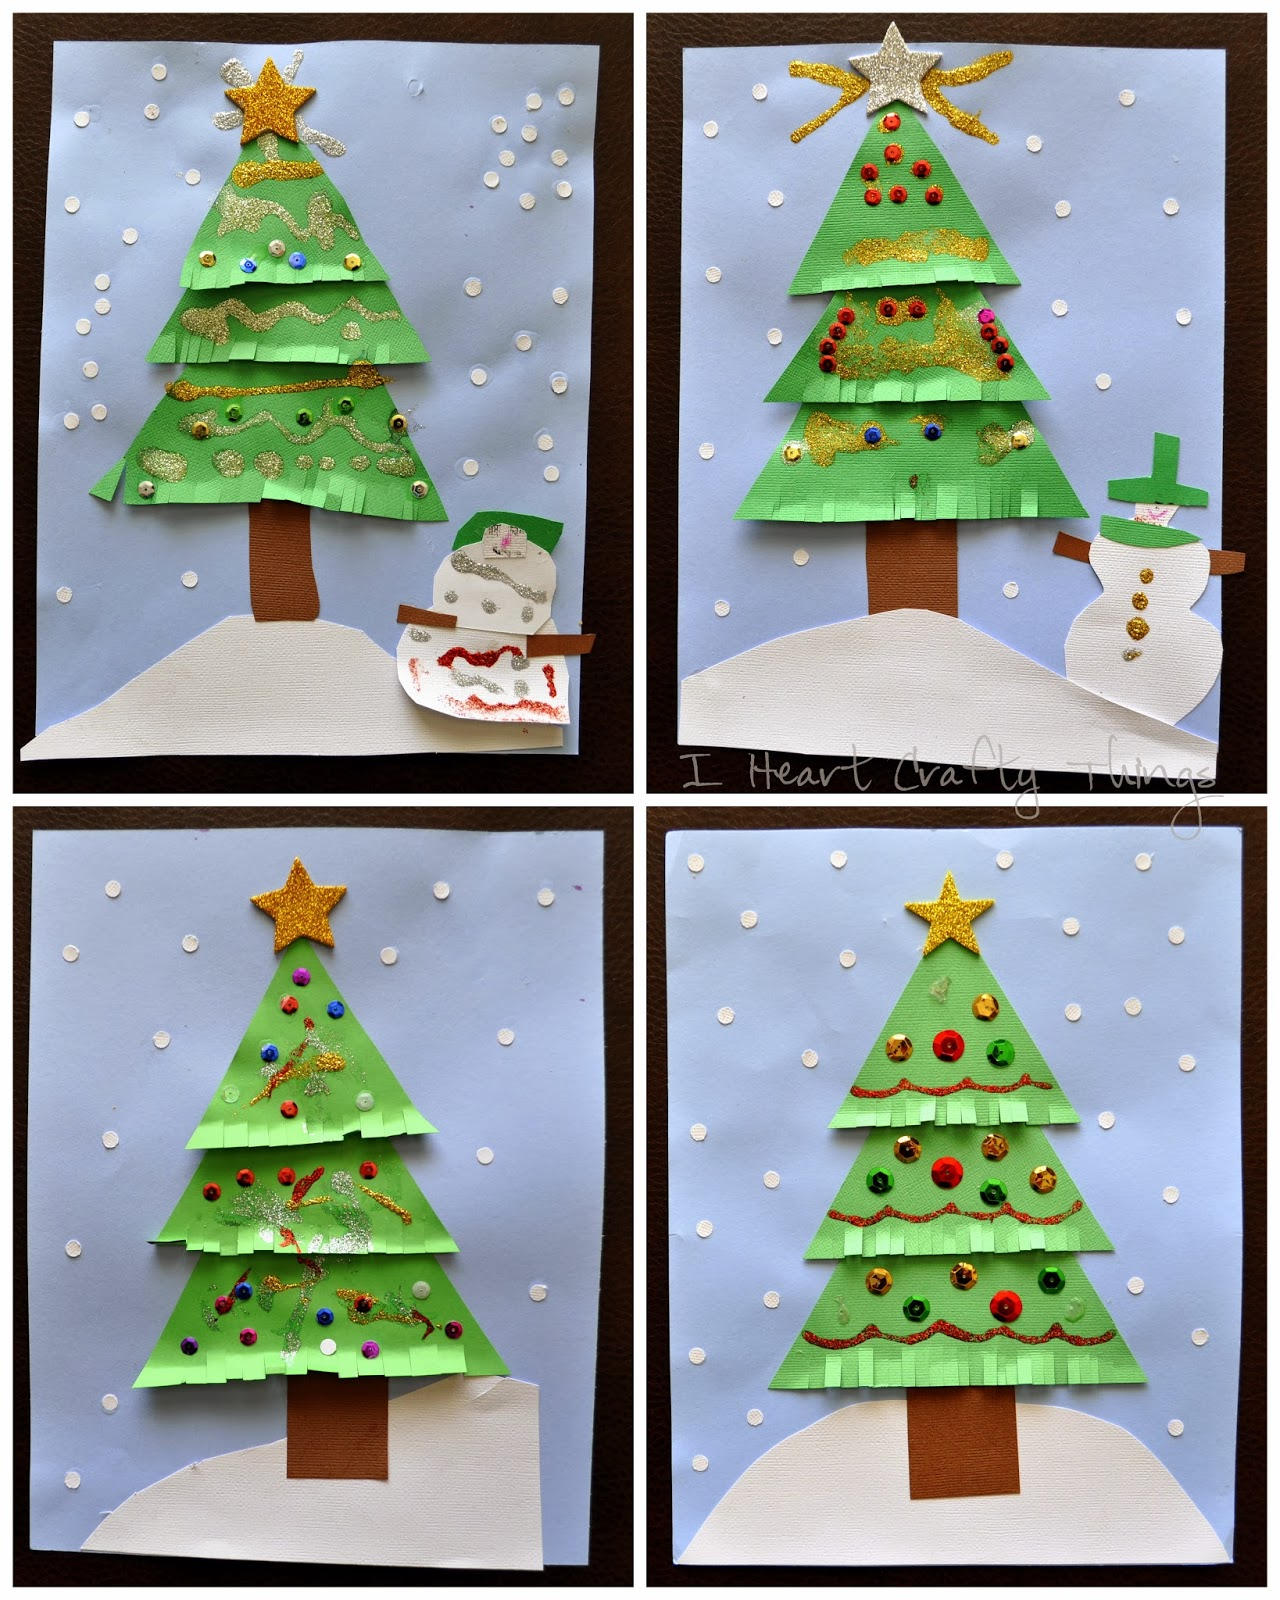 Christmas Craft Ideas For Kids To Make At School Part - 43: We Are Putting Up Our Christmas Tree Today So Itu0027s Beginning To Look A Lot  Like Christmas Around Our Home.